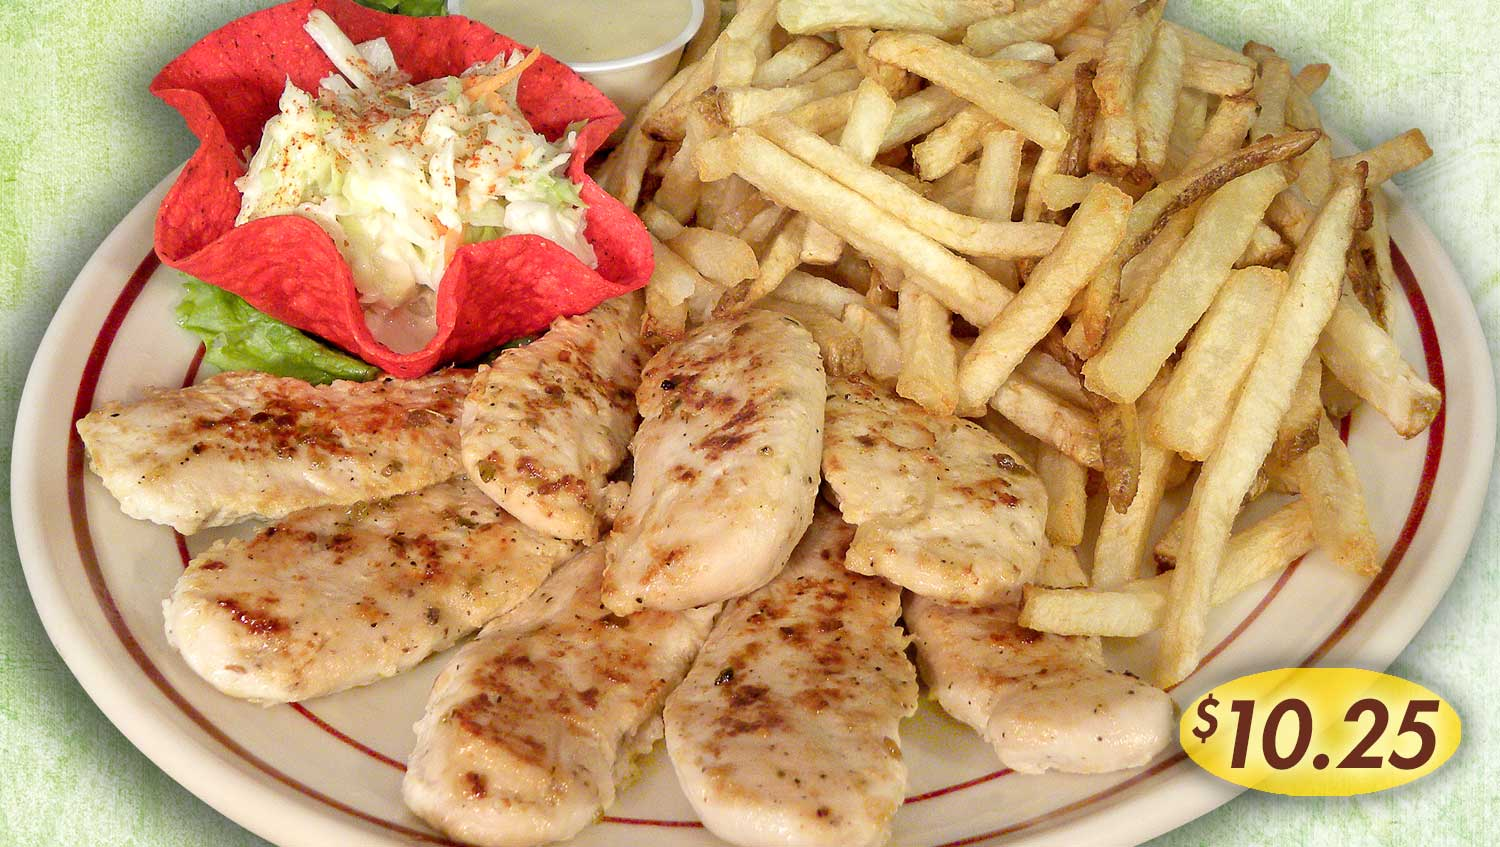 Rockne's Platters and Fries Menu Item